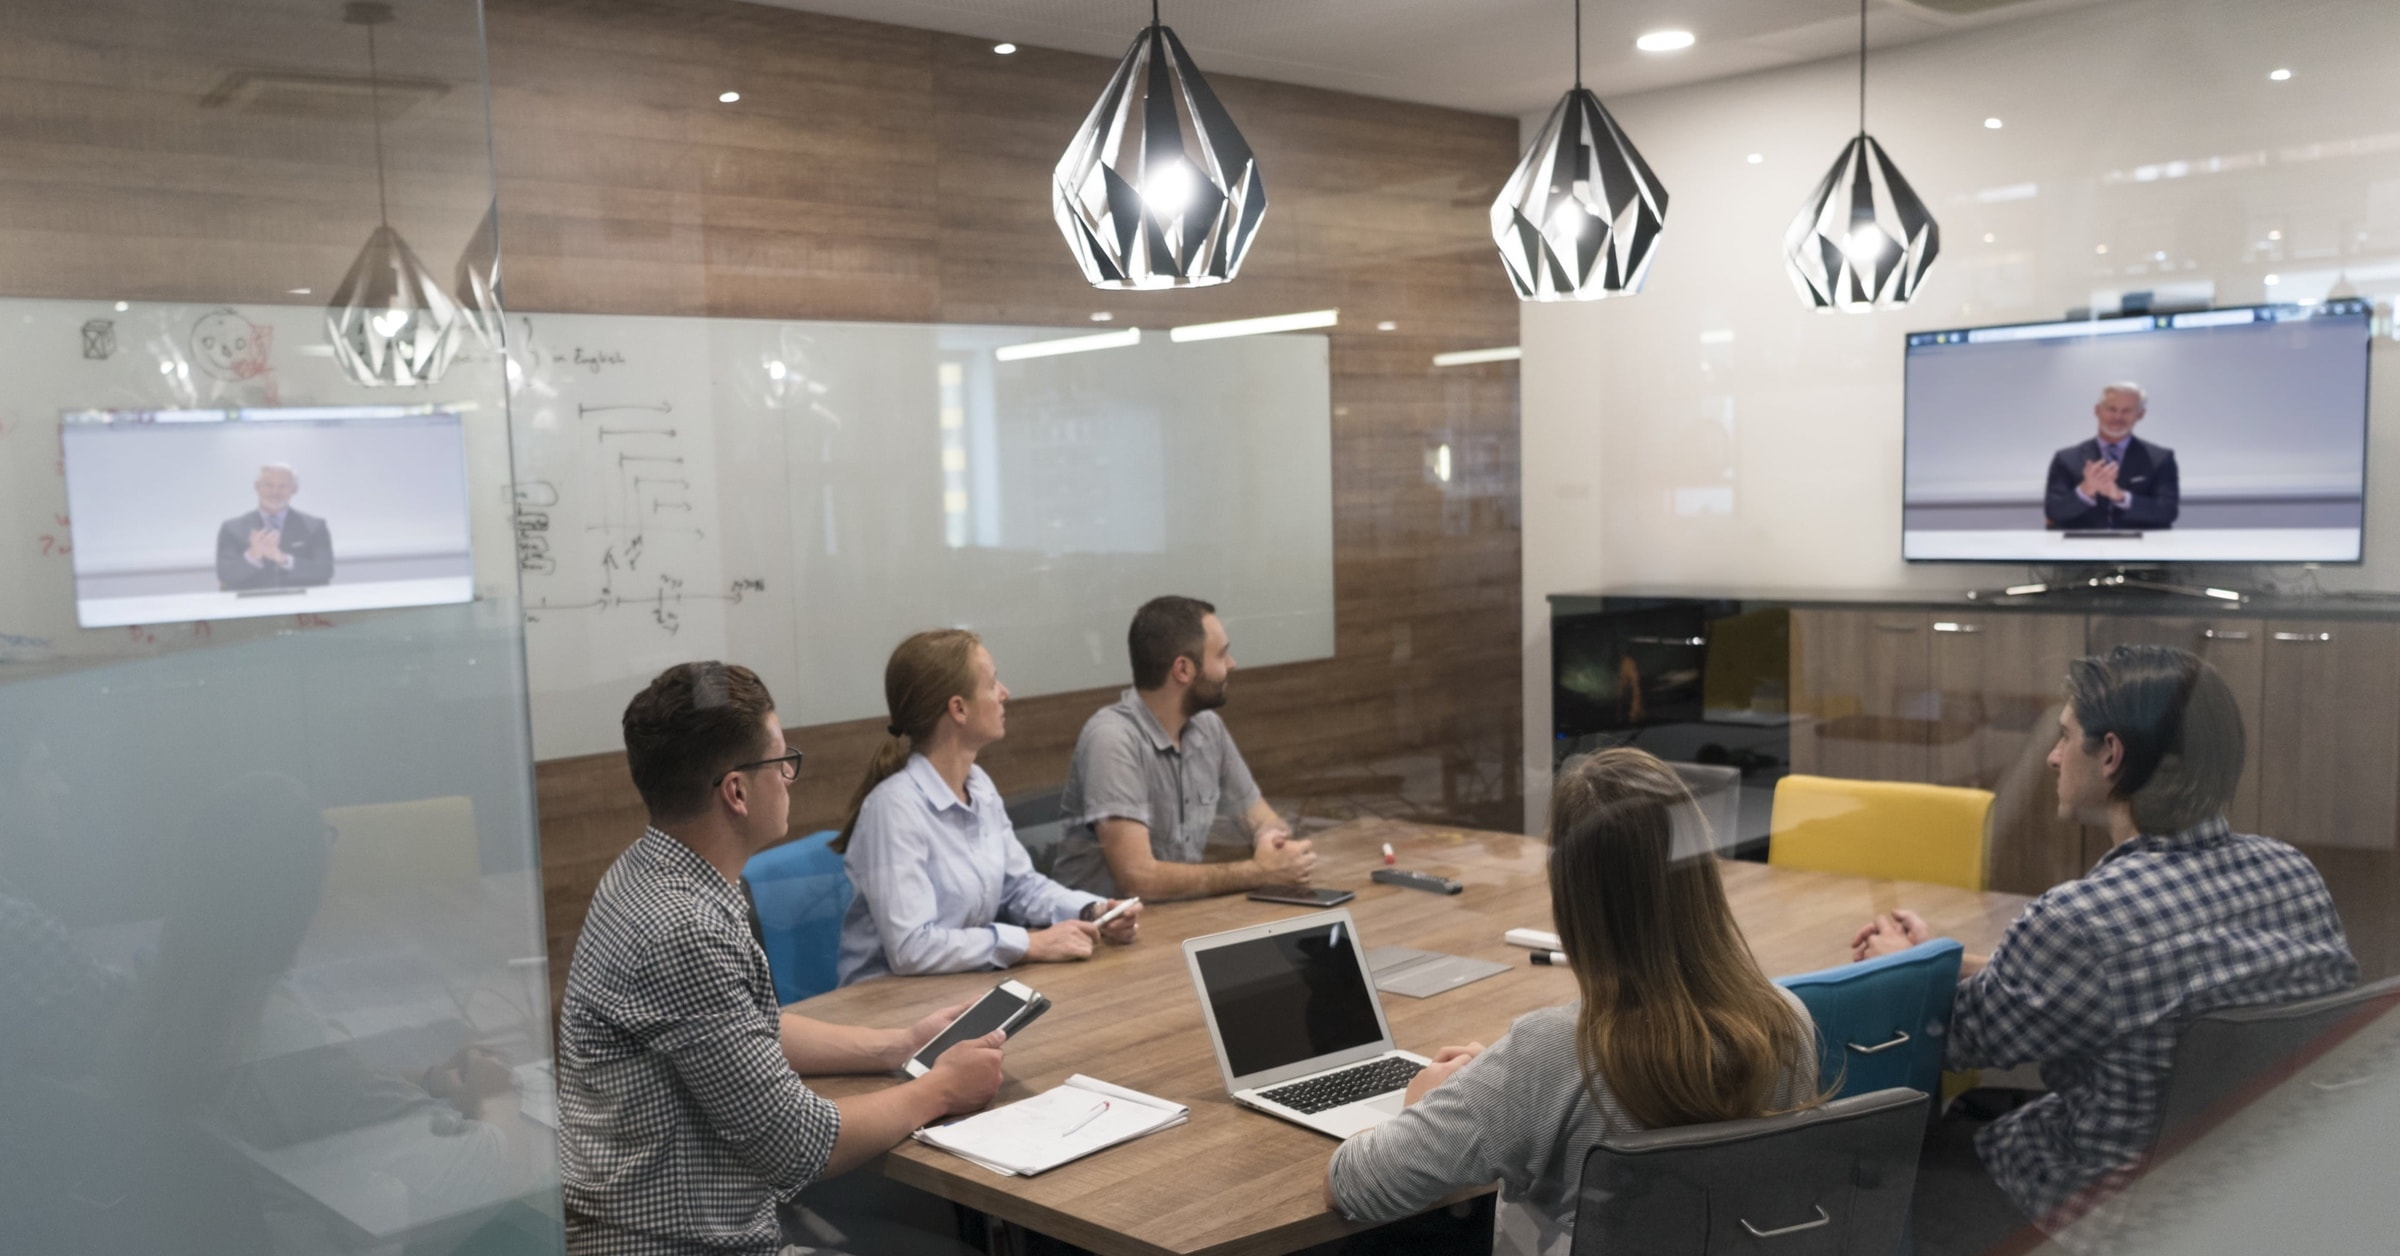 Restructuring the way you run meetings with these eight steps will have a big impact not only on the time spent during the meeting but also on the actionable plans and goals achieved after the meeting.